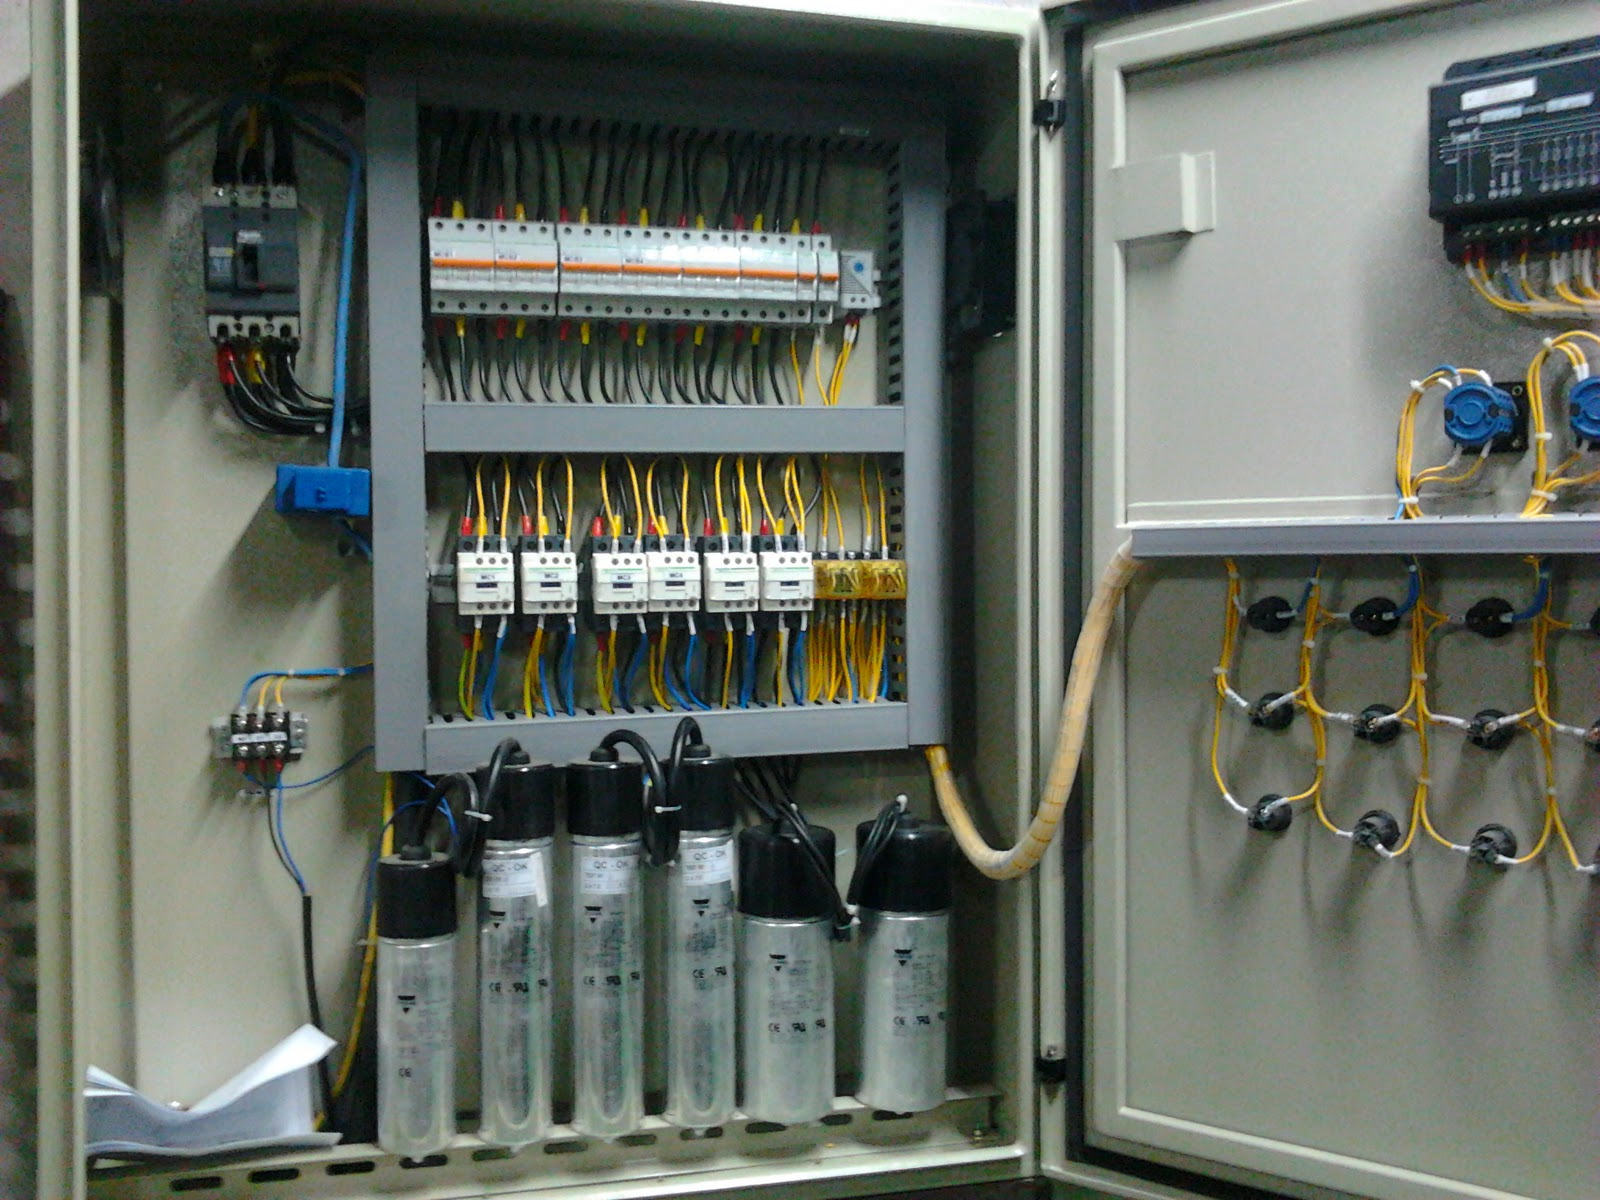 Automatic Power Factor Controller Using Pic Microcontroller furthermore Rtc Ds 1307 Arduino further PANEL 20CAPACITOR 20BANK also 164059 84 250r Headlight Wiring additionally P 15689 Bw Cm8 S2 Floorstanding Speakers Pair. on power capacitor wiring